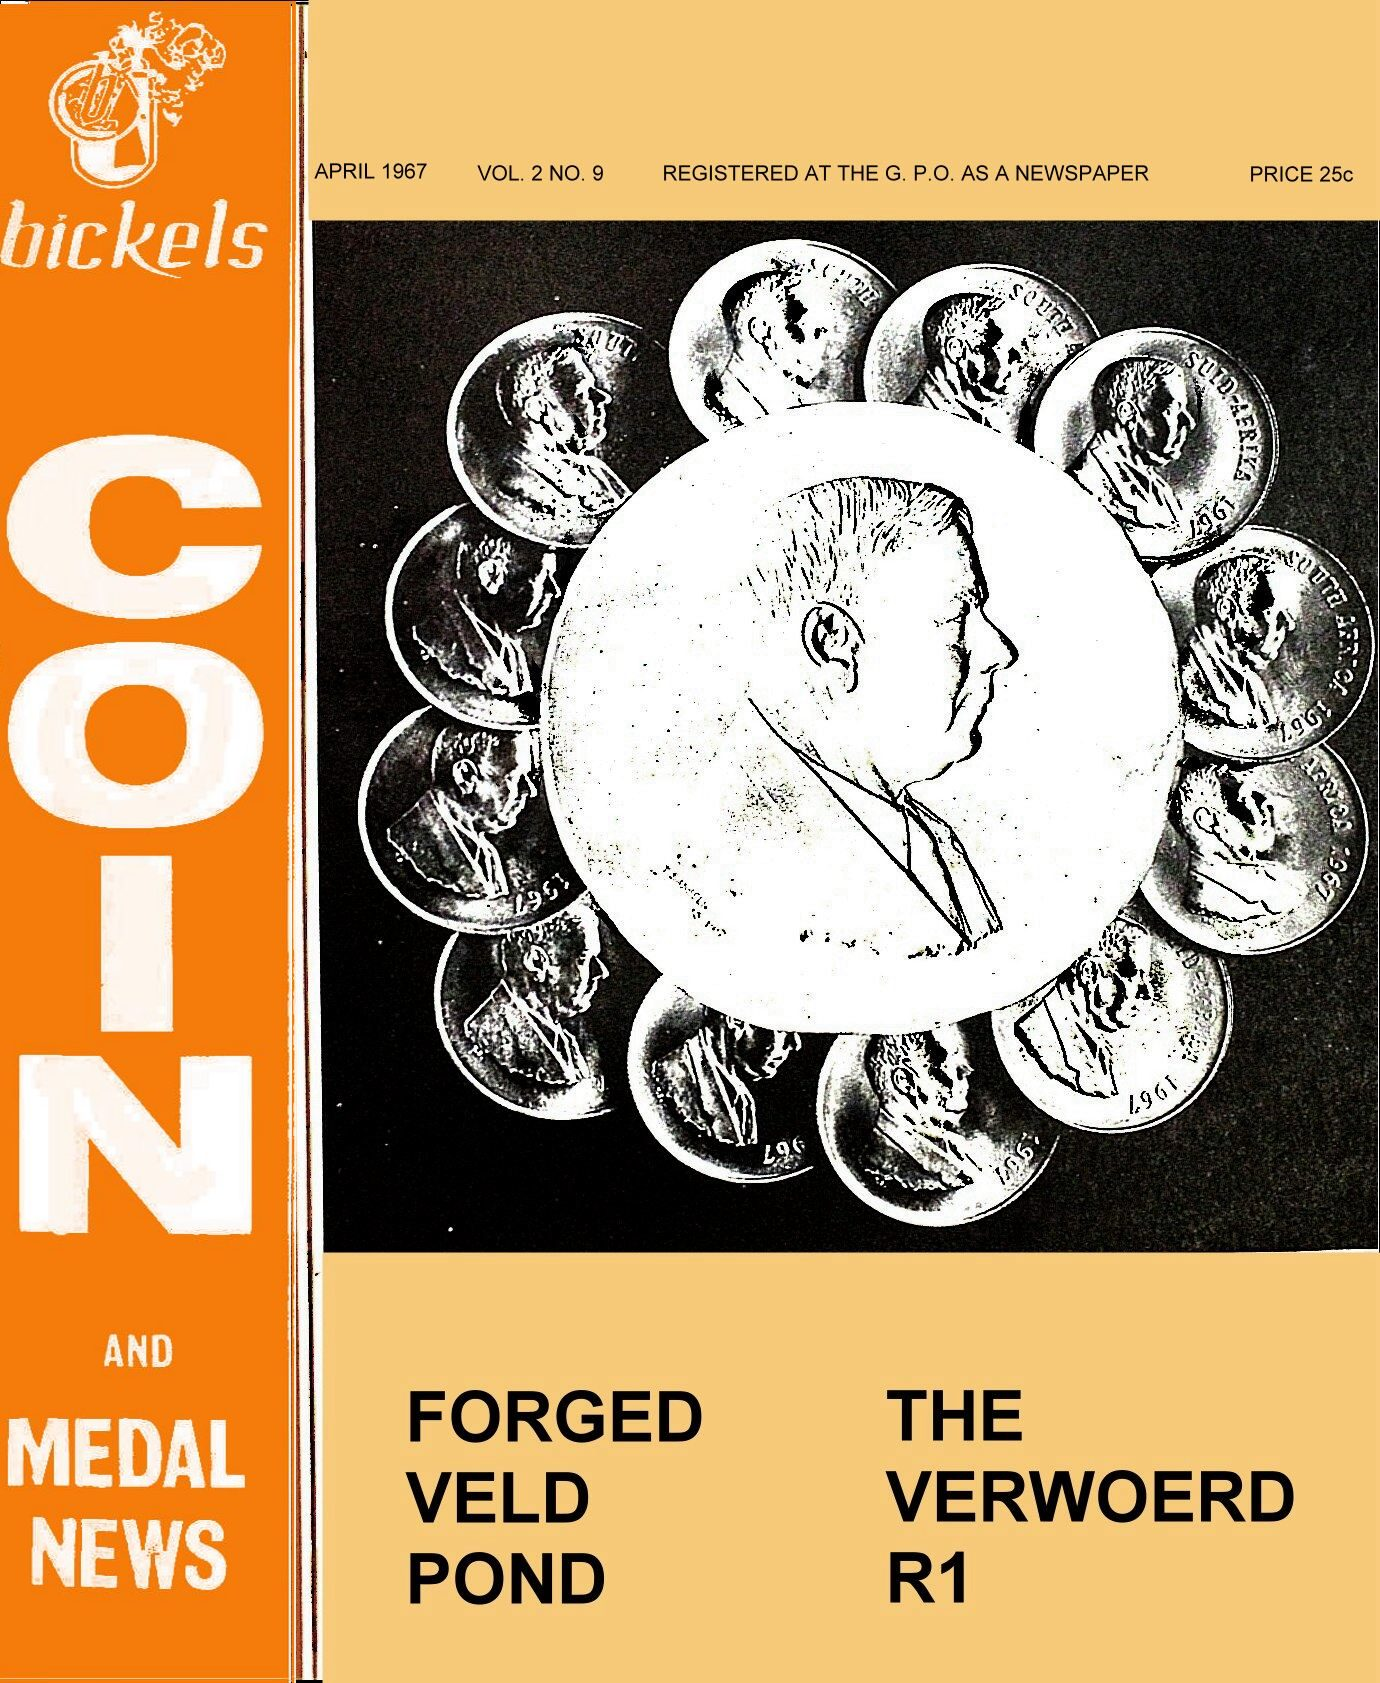 Bickels Coin & Medal News April 1967 Vol 2 No 9